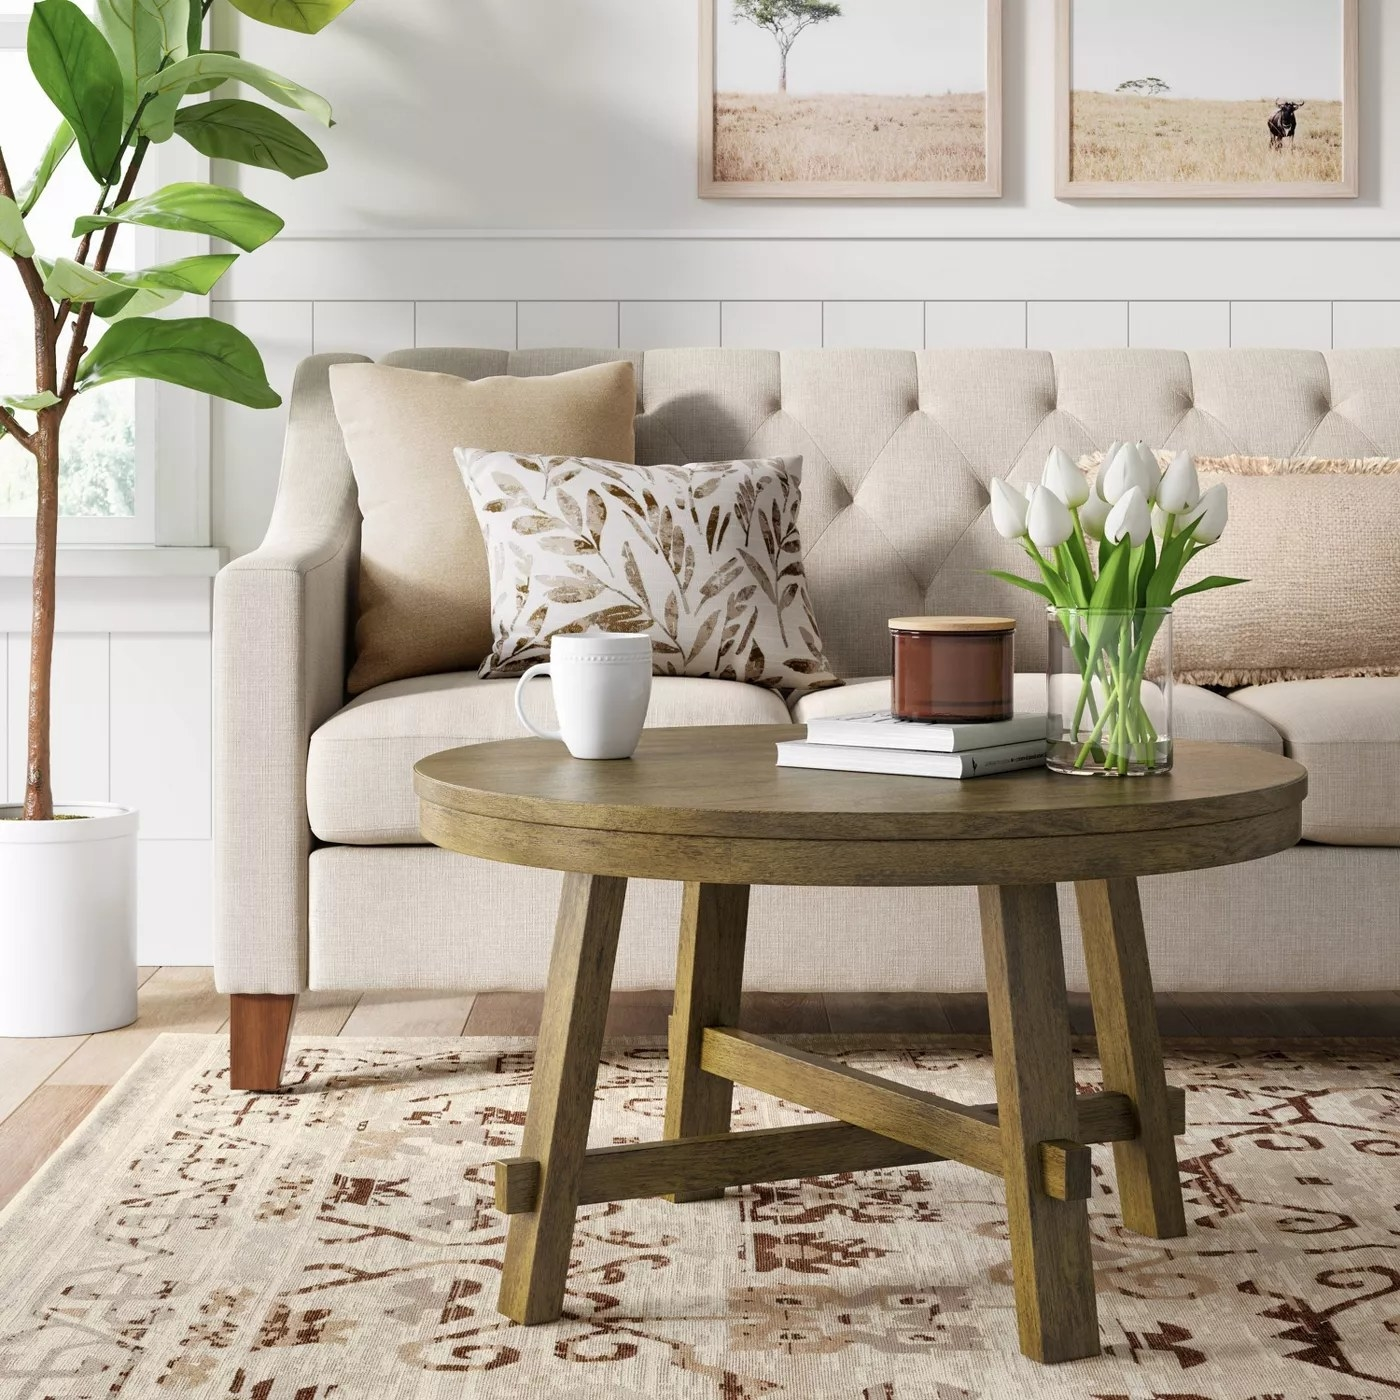 The coffee table with crisscross legs in a living room